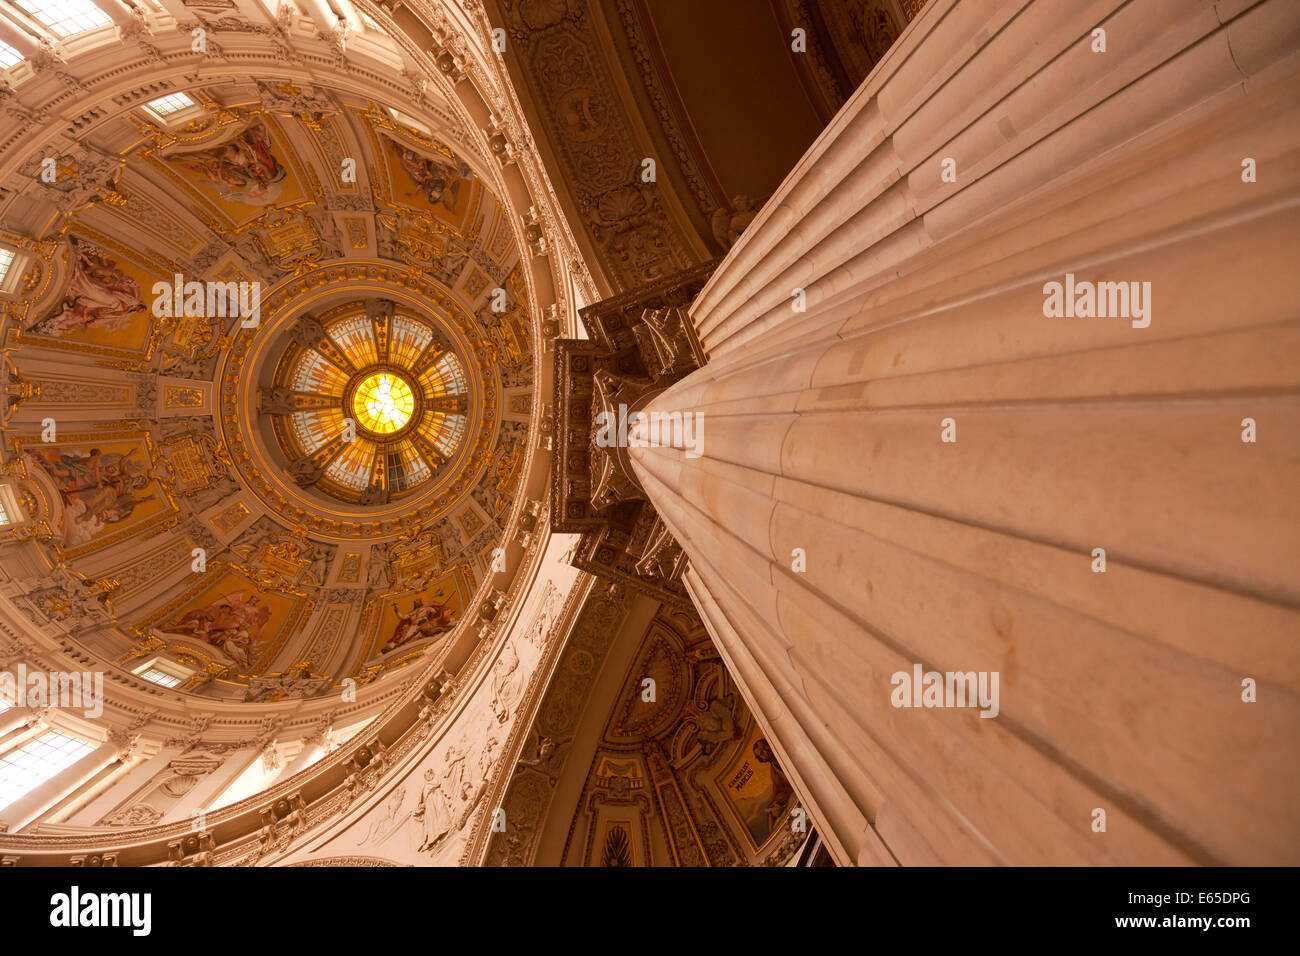 Interior Berlin Berliner Dom Cathedral Interior Stock Photos And Berliner